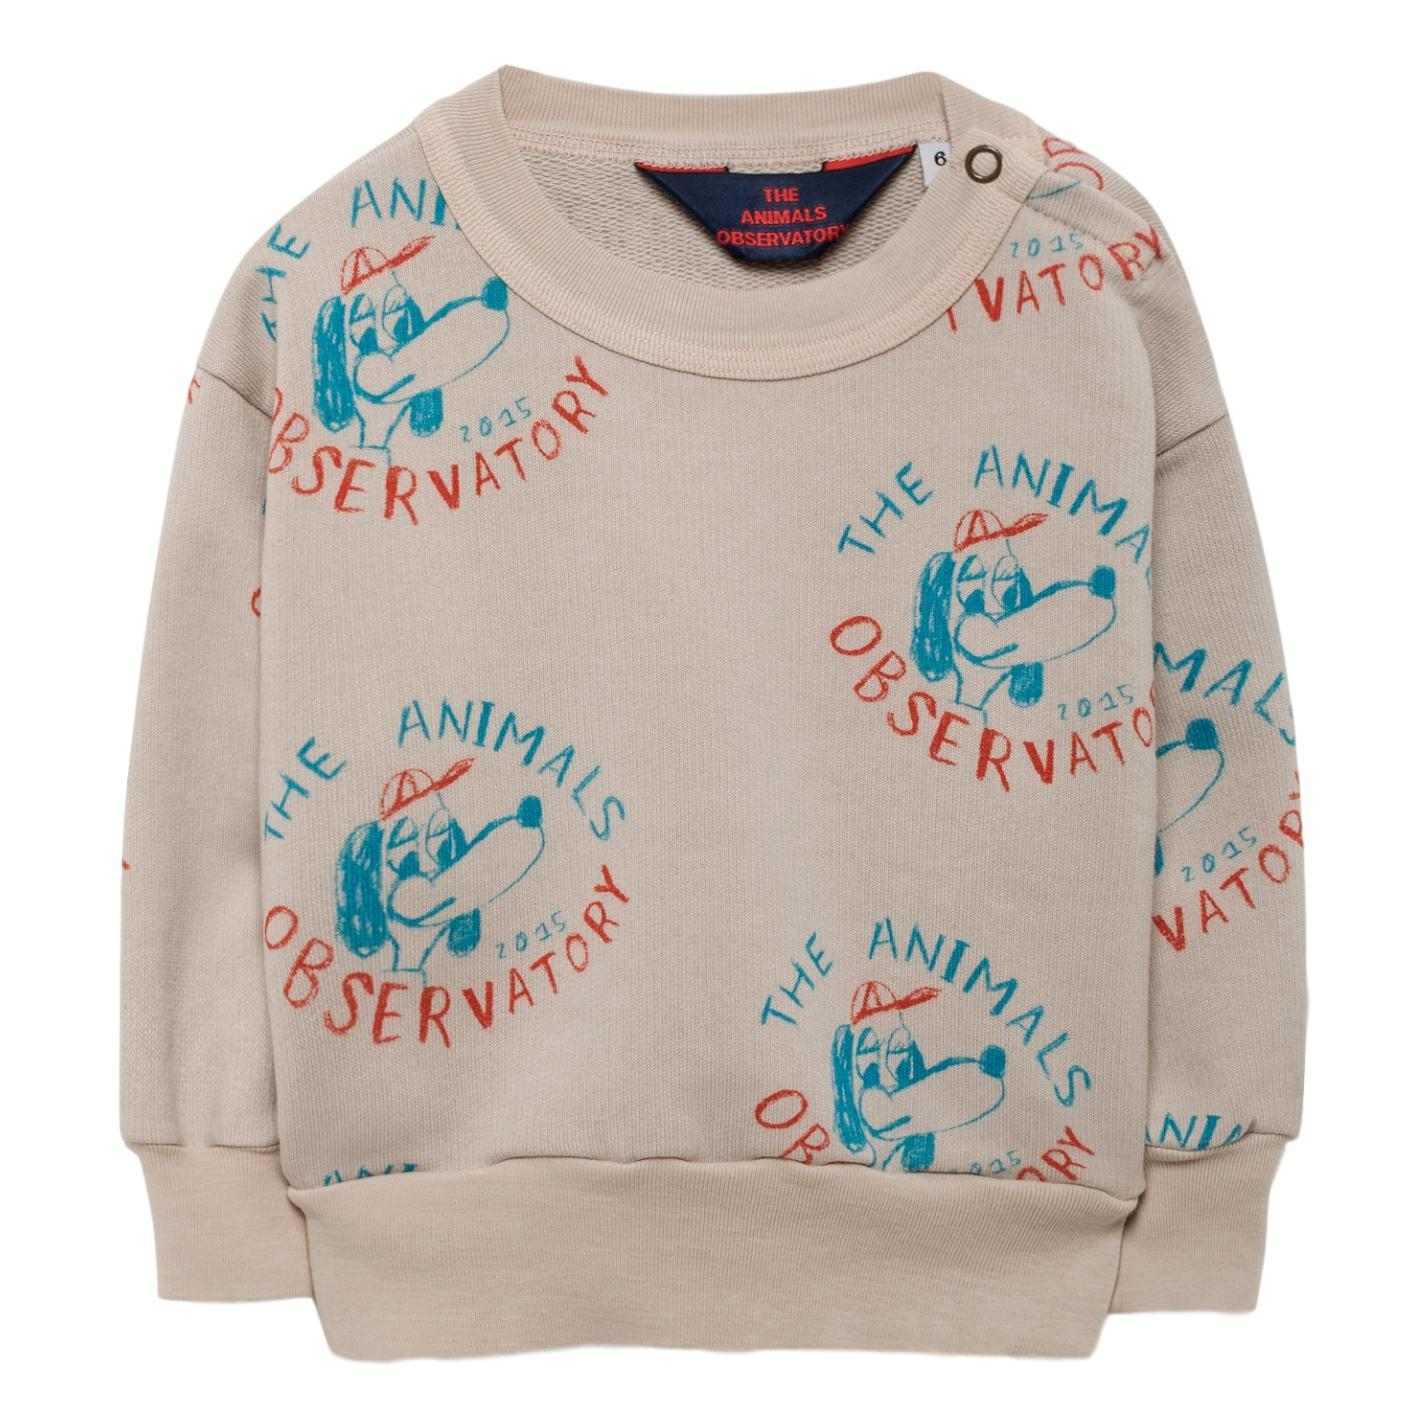 THE ANIMALS OBSERVATORY -Beige Dogs Bear Babies Sweatshirt